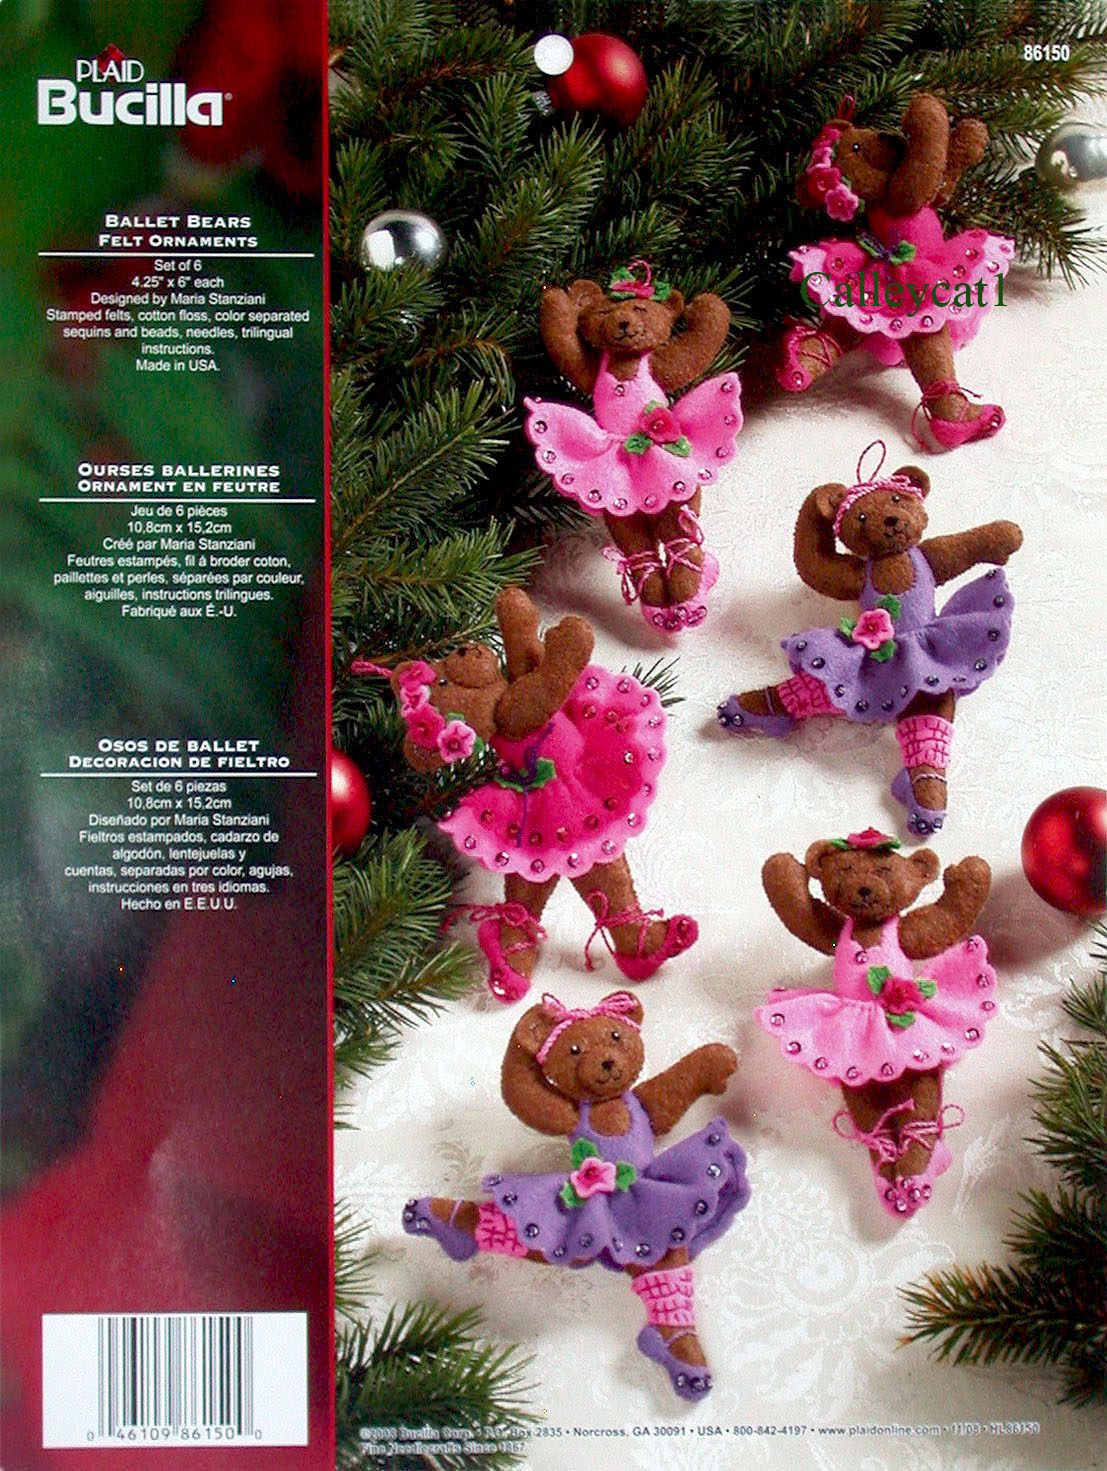 ballet bears bucilla felt ornament kit 86150 - Christmas Tree Decorating Ensemble Kits